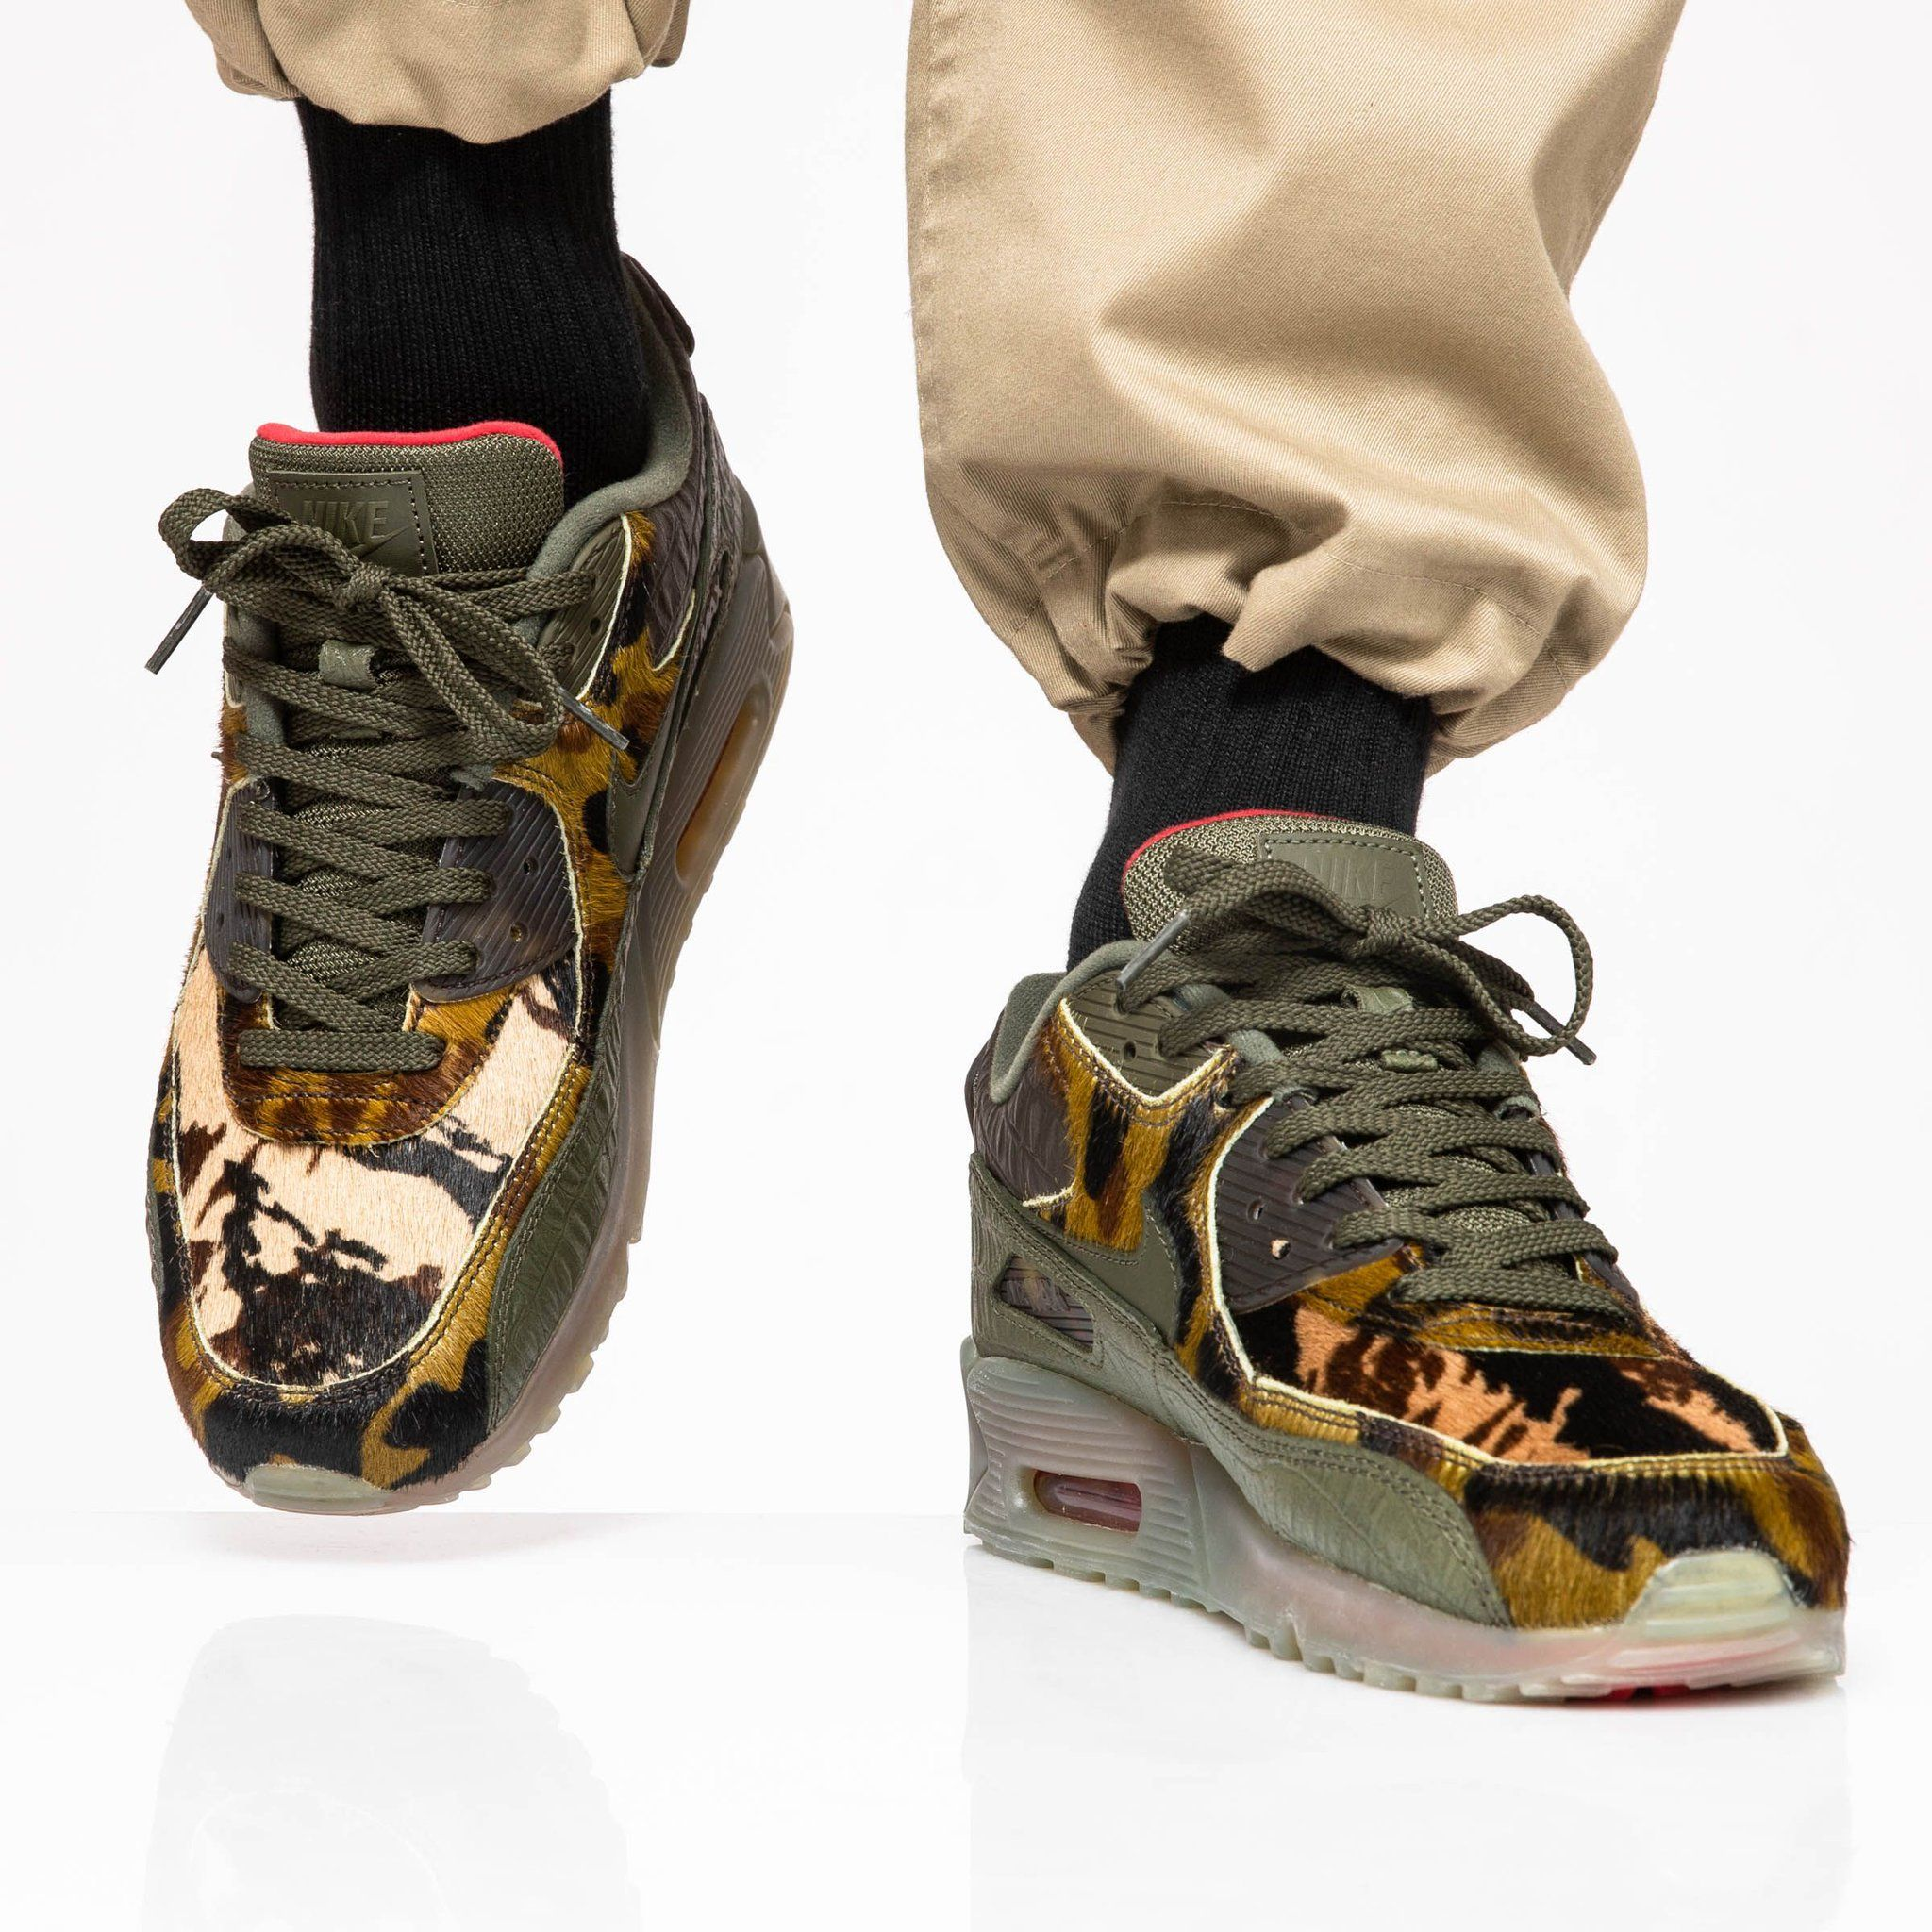 TITOLO on in 2019 | Air max 90, Air max, Latest shoe trends